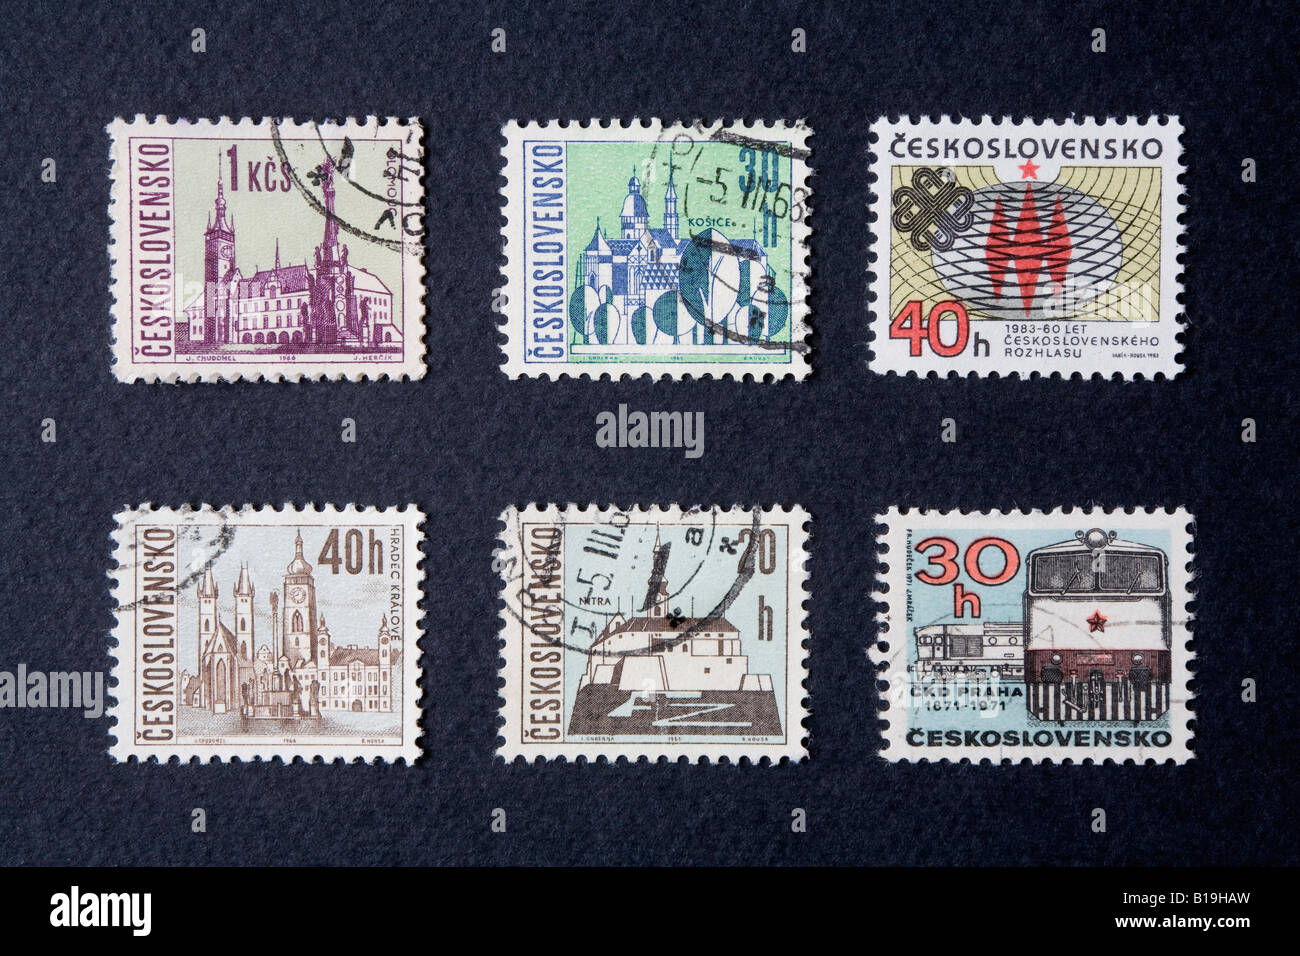 Czechoslovakian postage stamps from the 1960s and 1970s - Stock Image